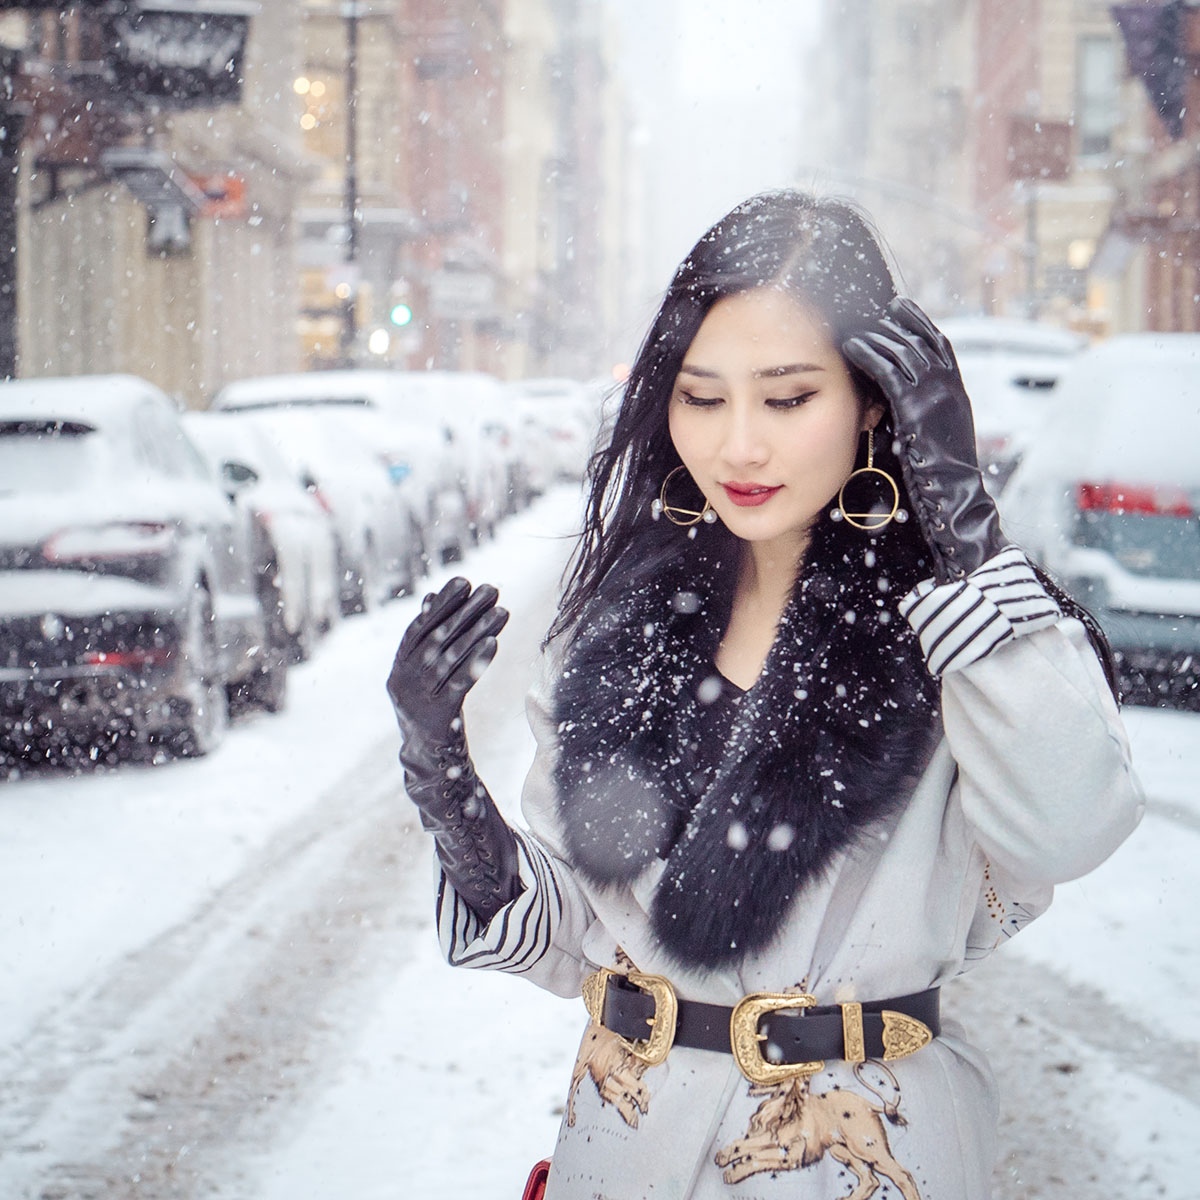 of leather and lace sandra mansour zodiac coat in snow soho b-low the belt